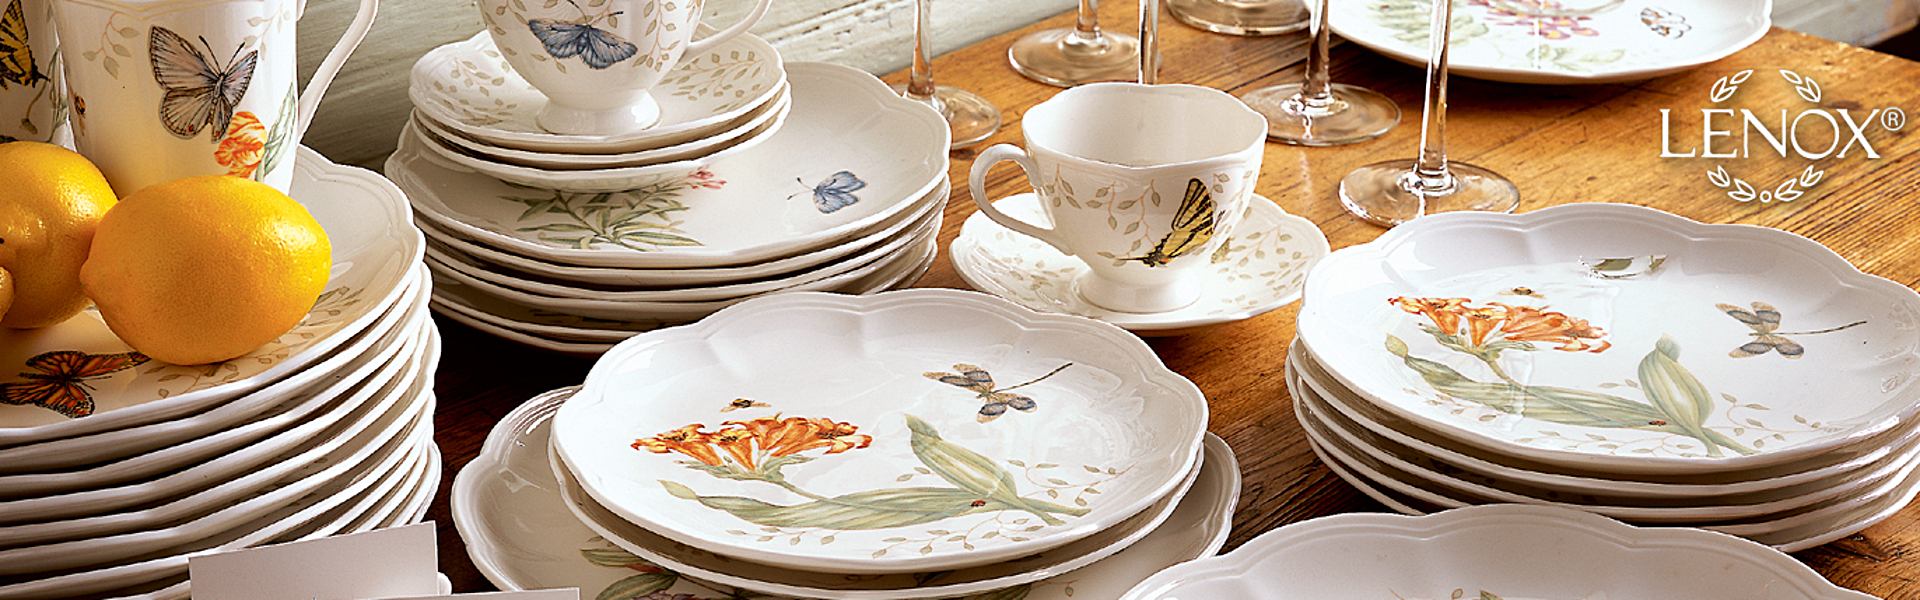 Lenox Butterfly Meadow Collection